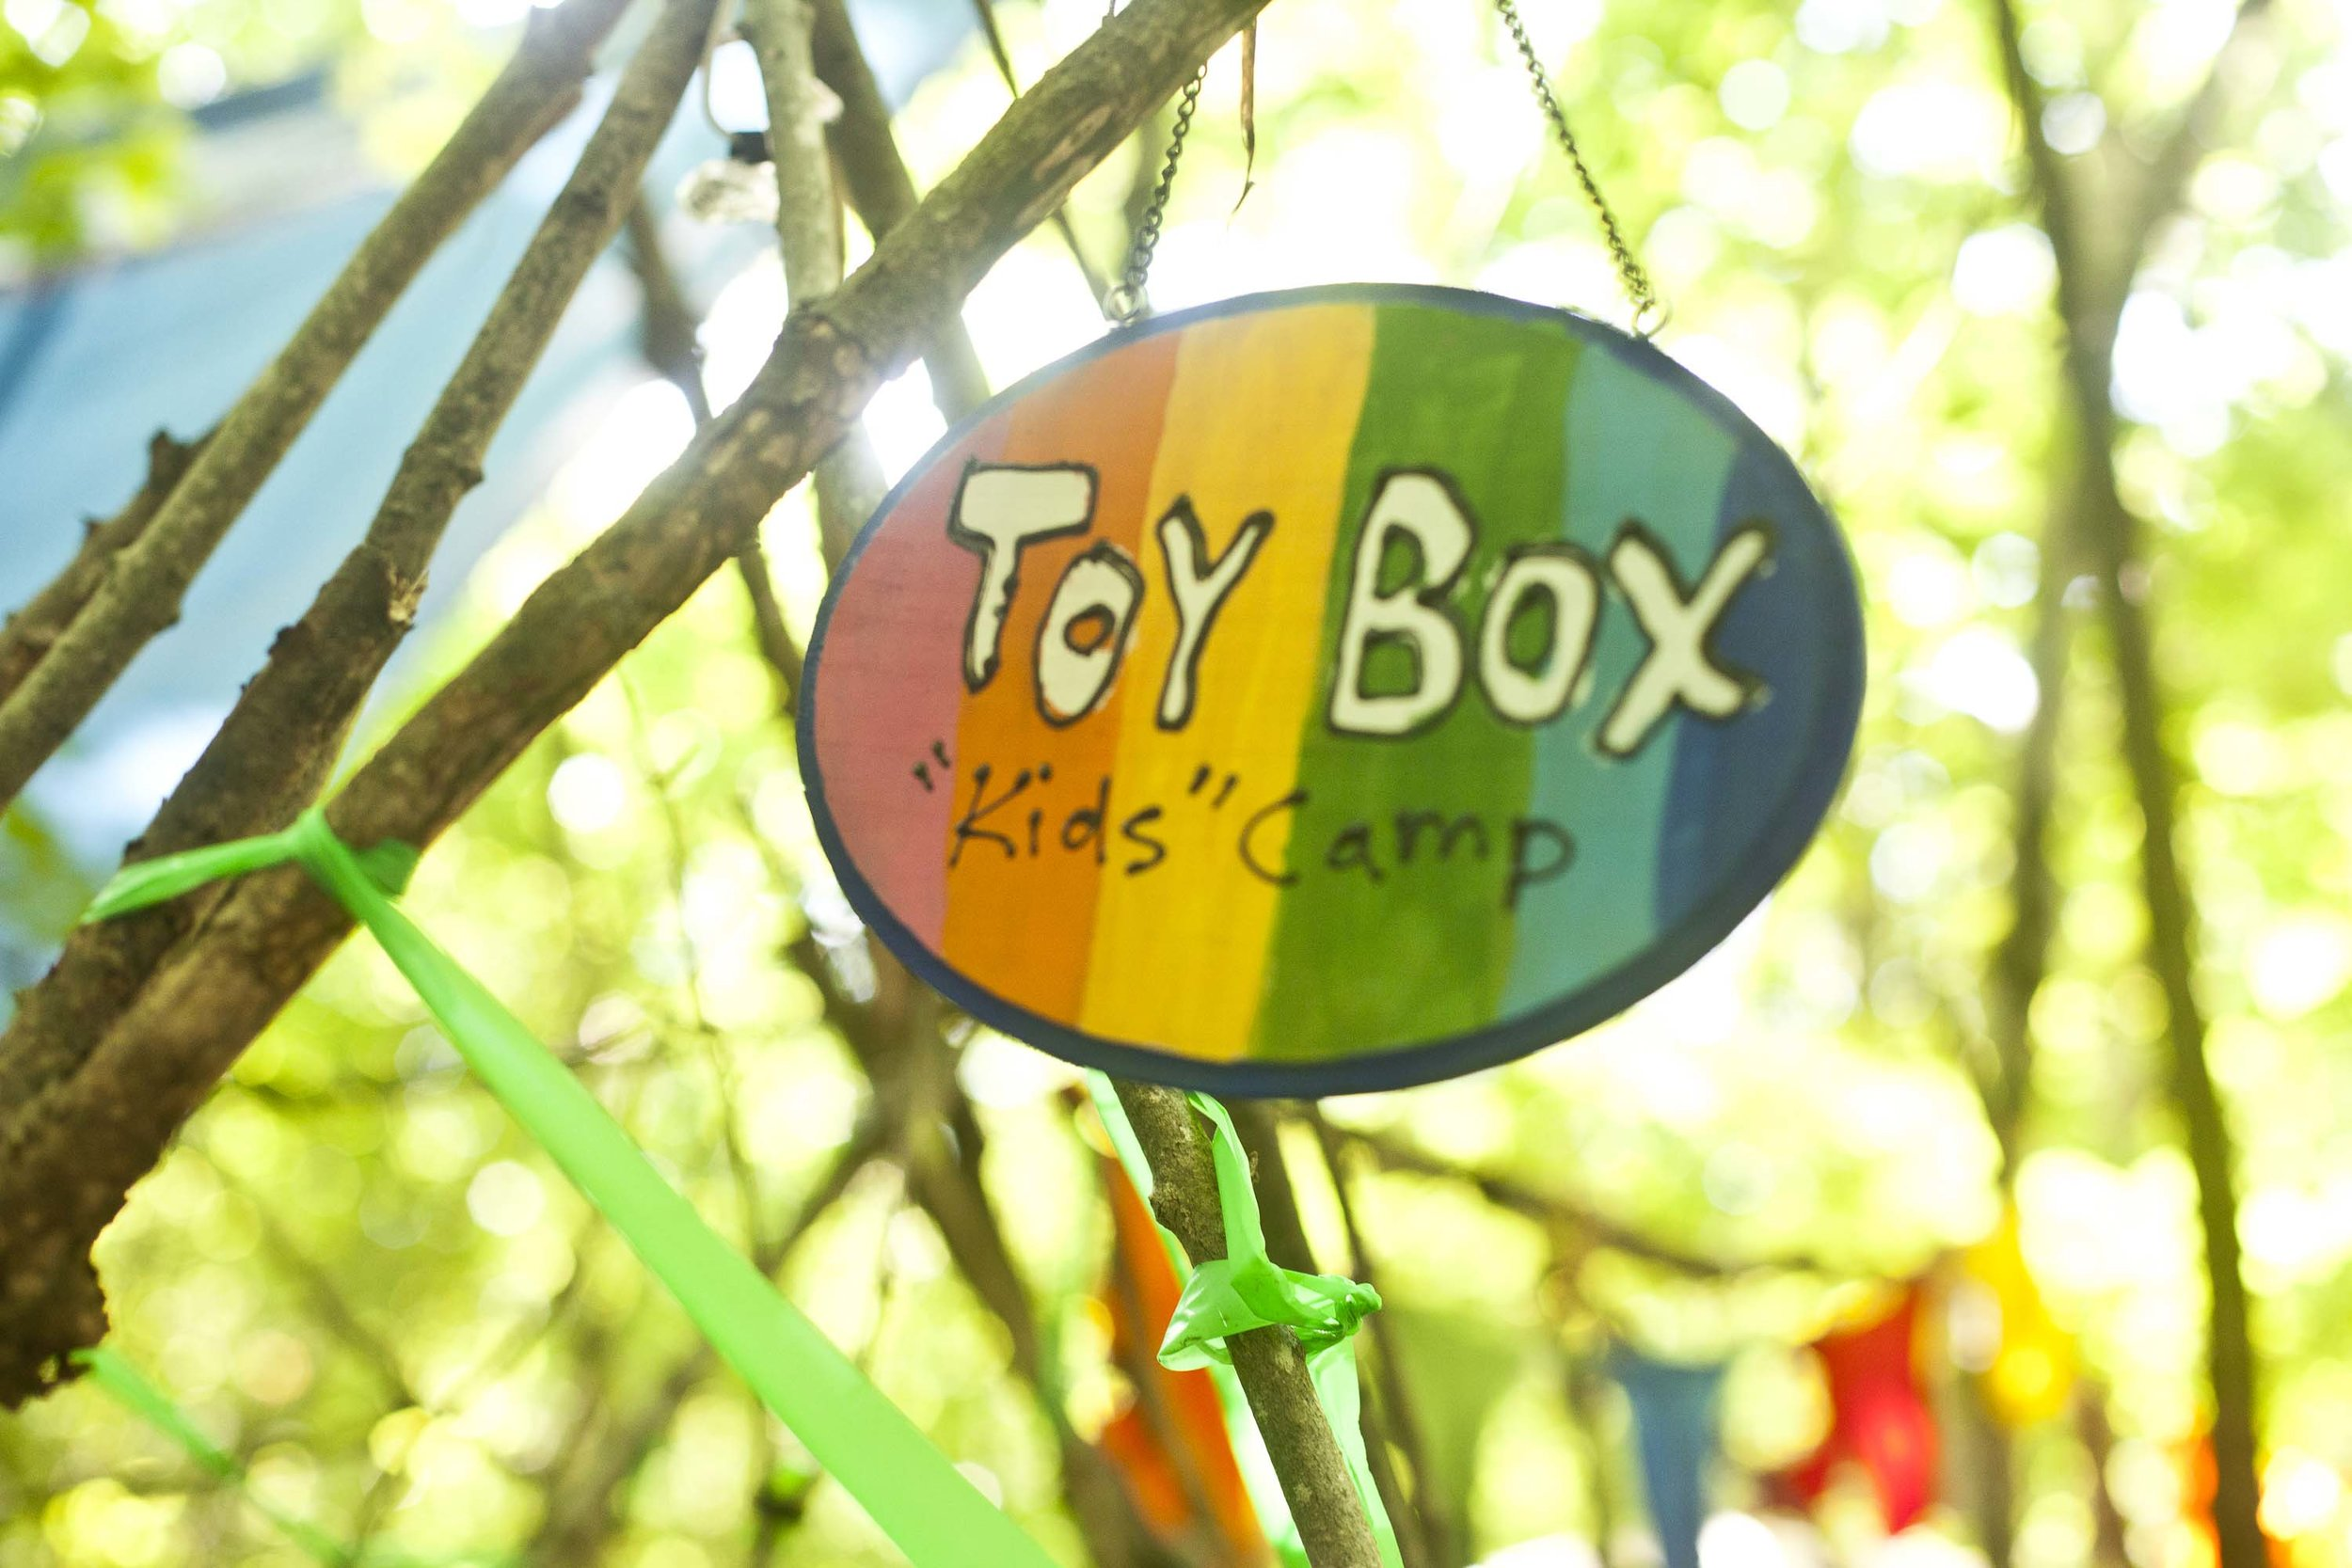 toy box kids camp sign